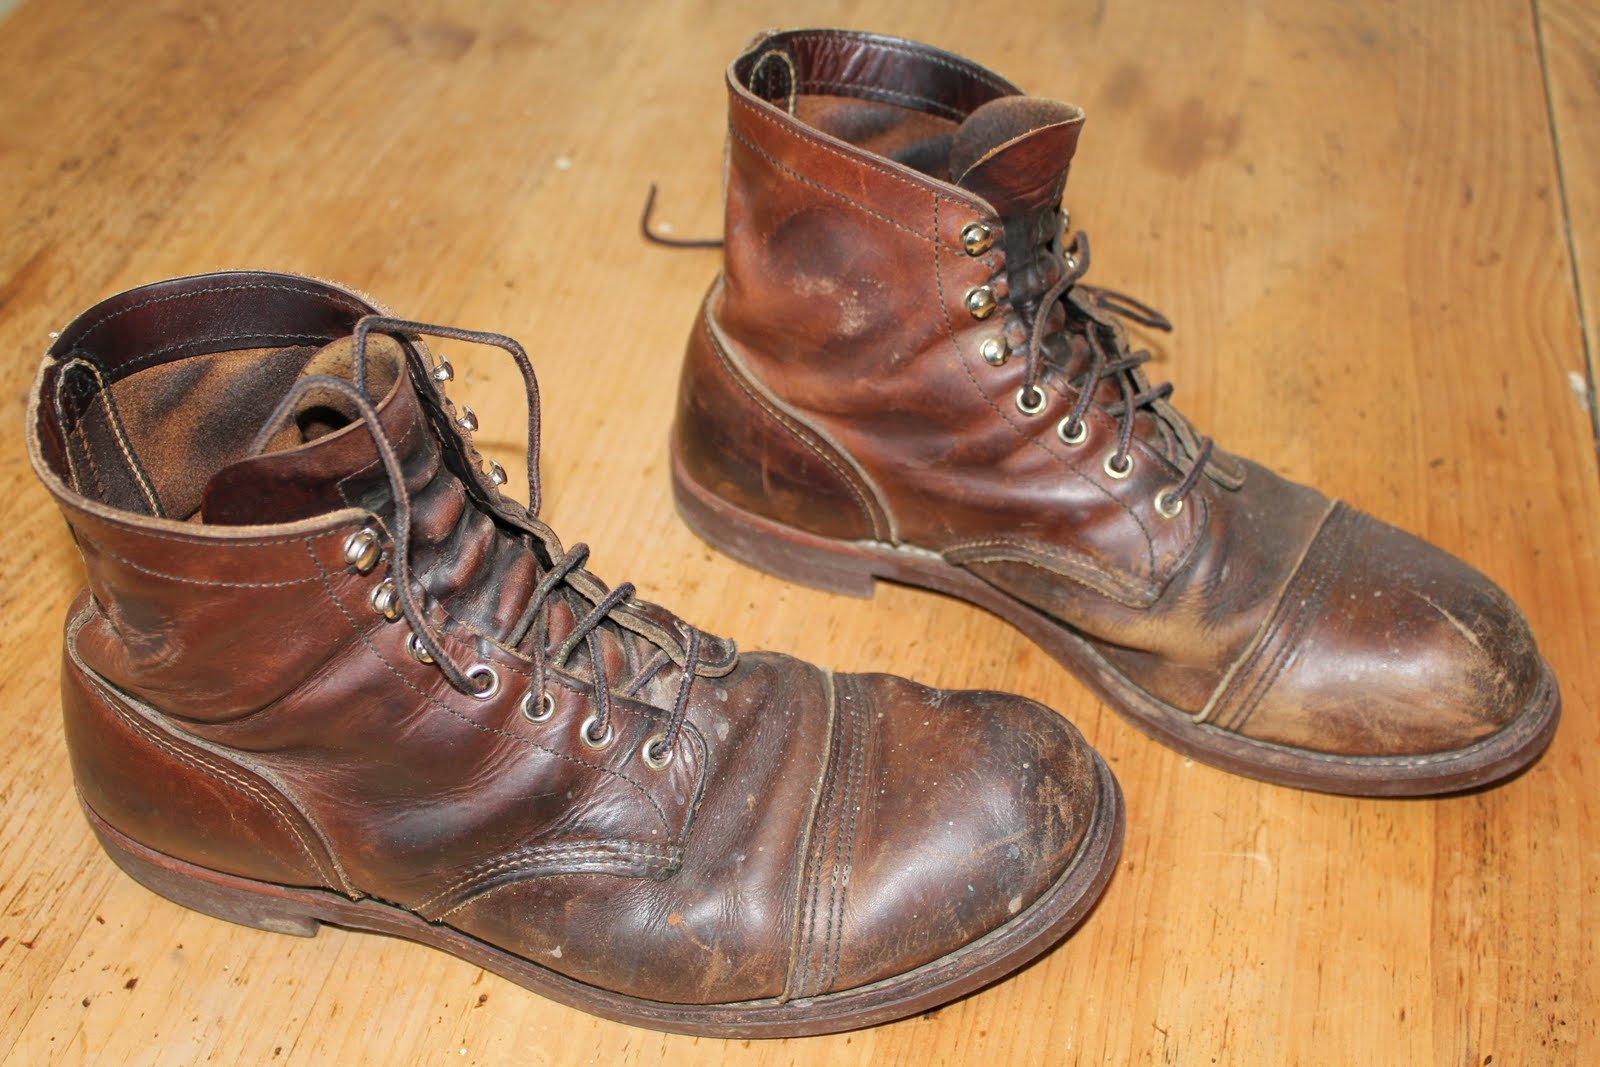 Vintage Workwear Red Wing Work Boots 年季の入った渋イイブーツ(boots